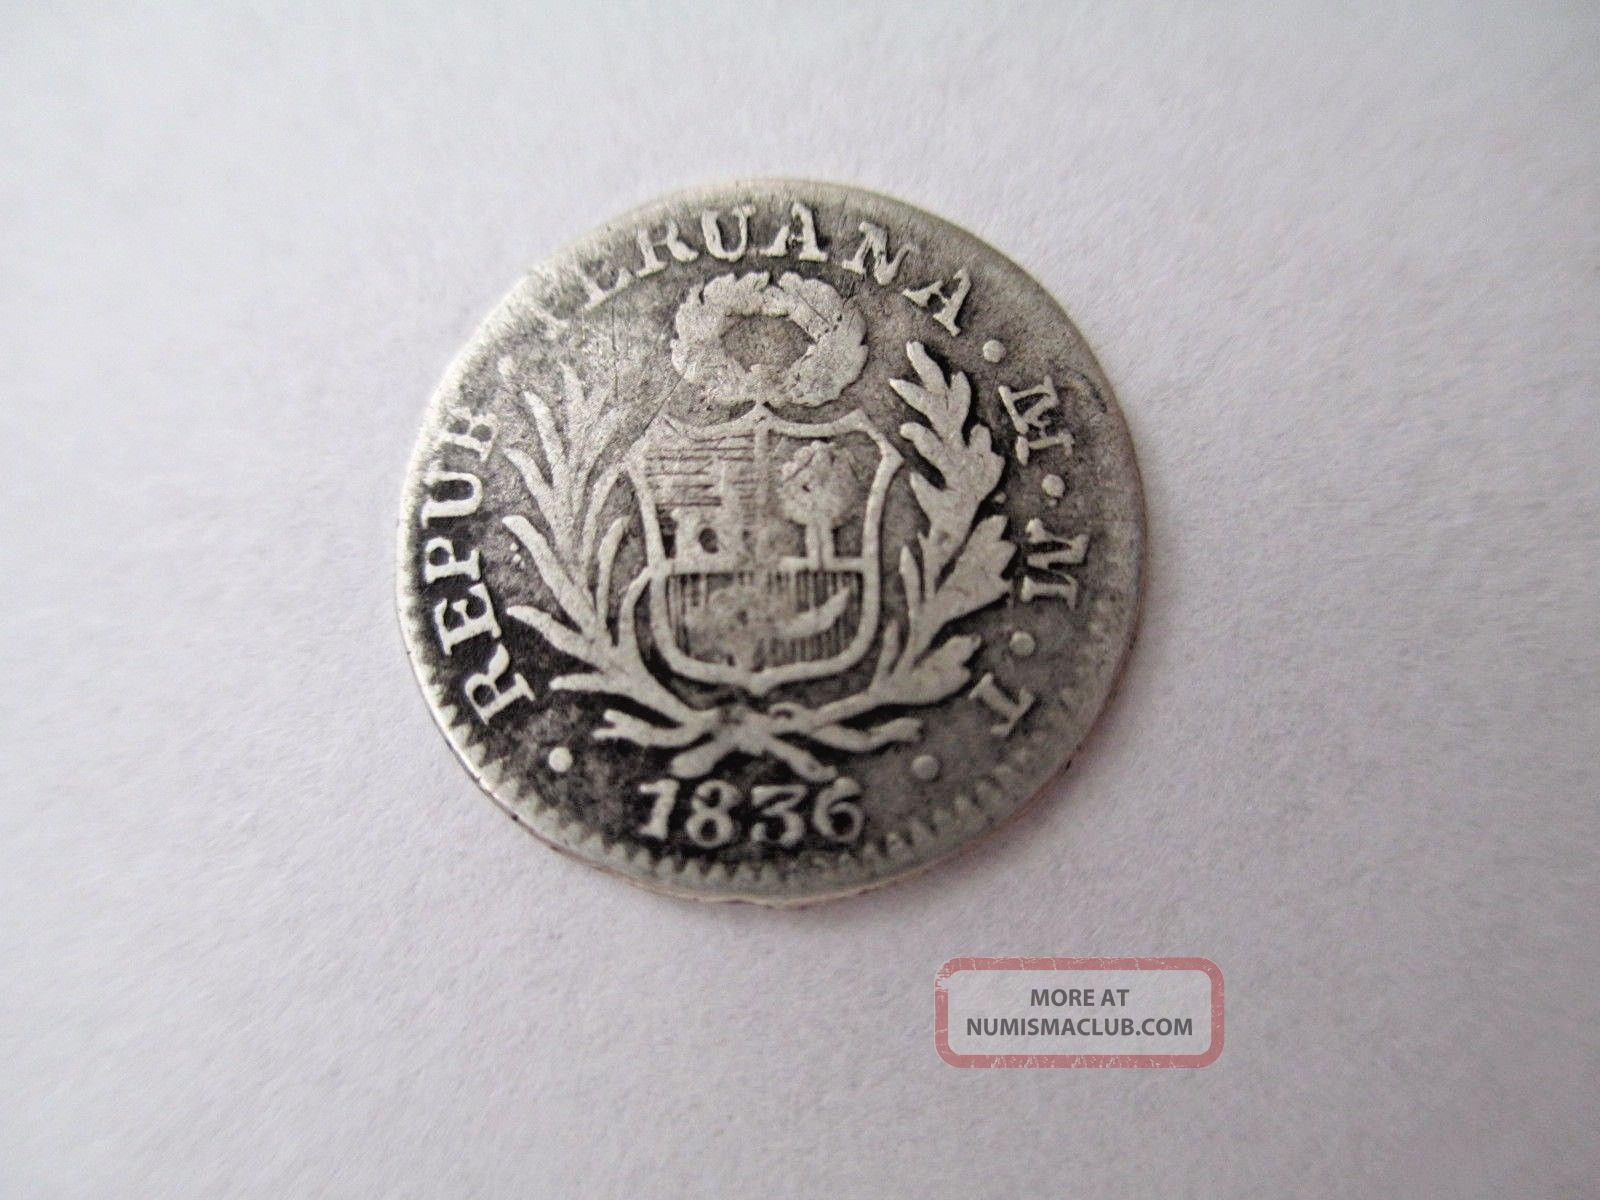 Peru Lima 1/2 Real 1836 M T 1.  3 Grams 903 Silver 16mm Diameter South America photo